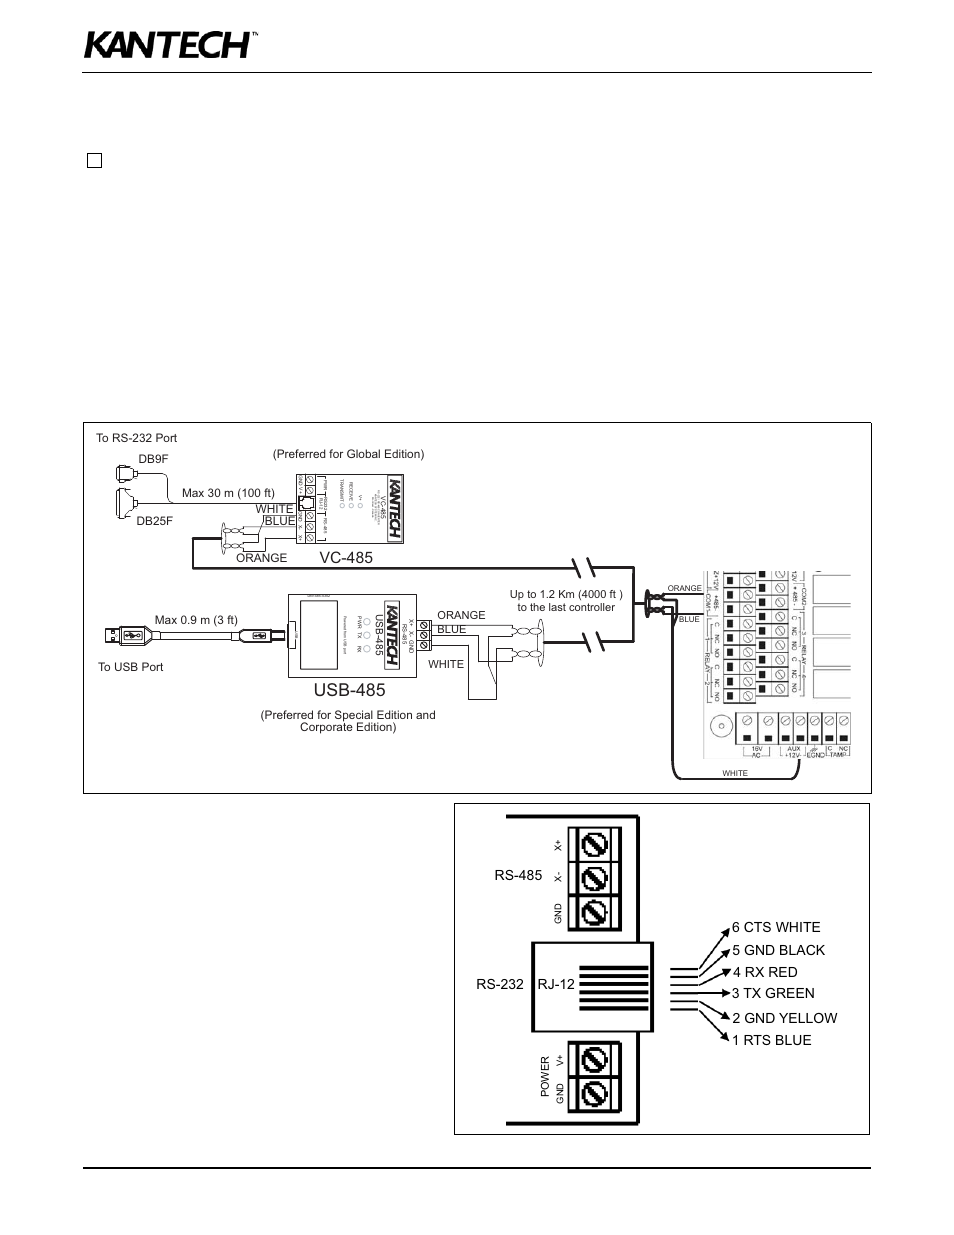 Kantech 300 Wiring Diagram